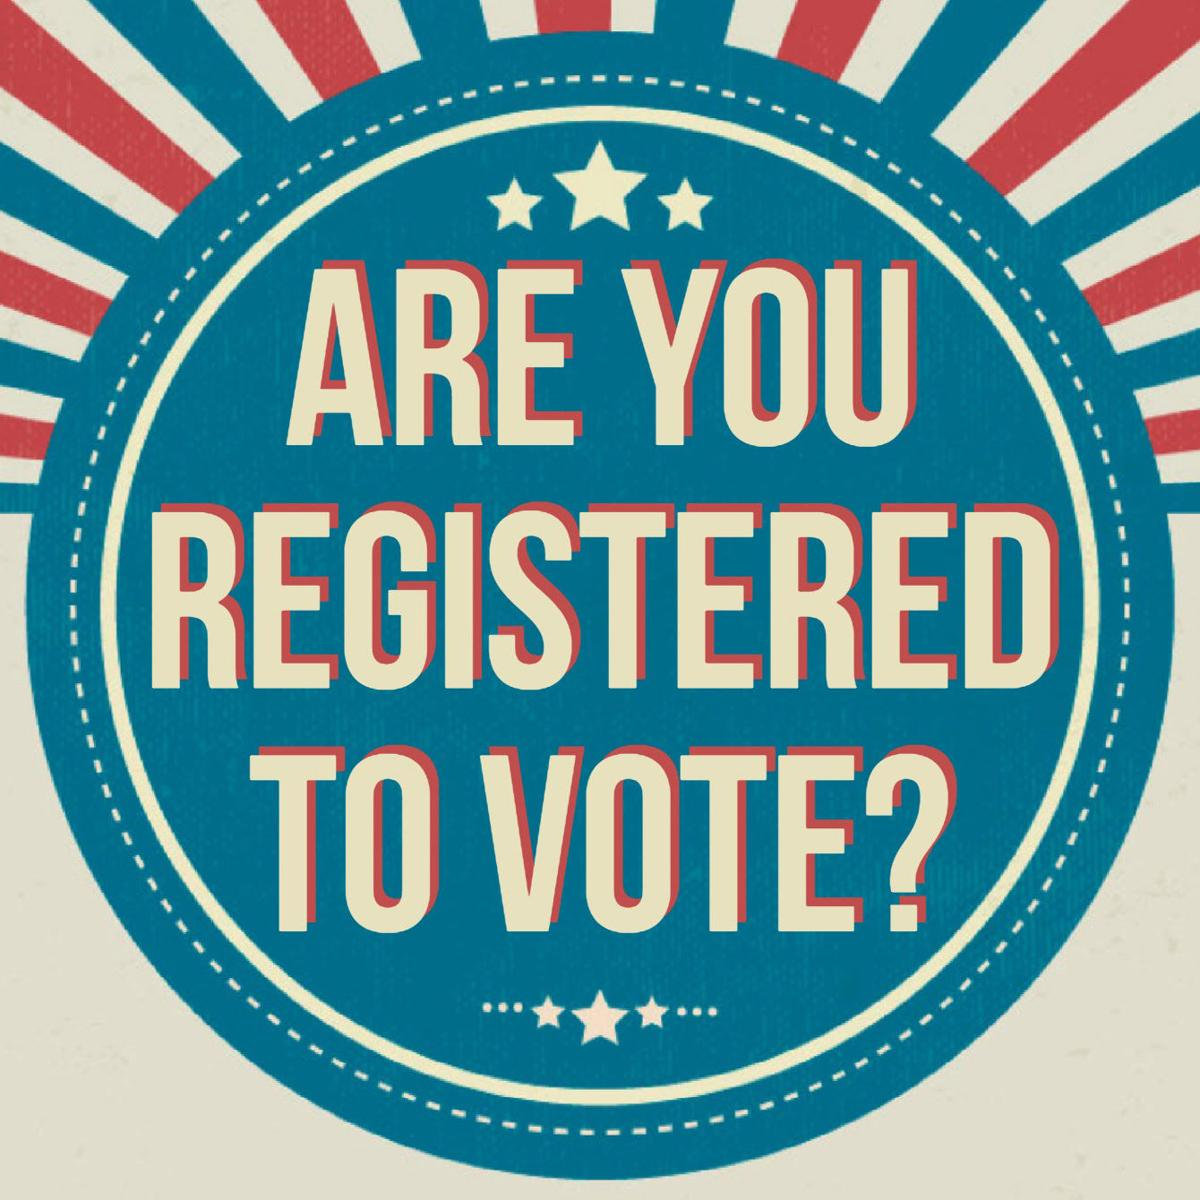 areyouregistered